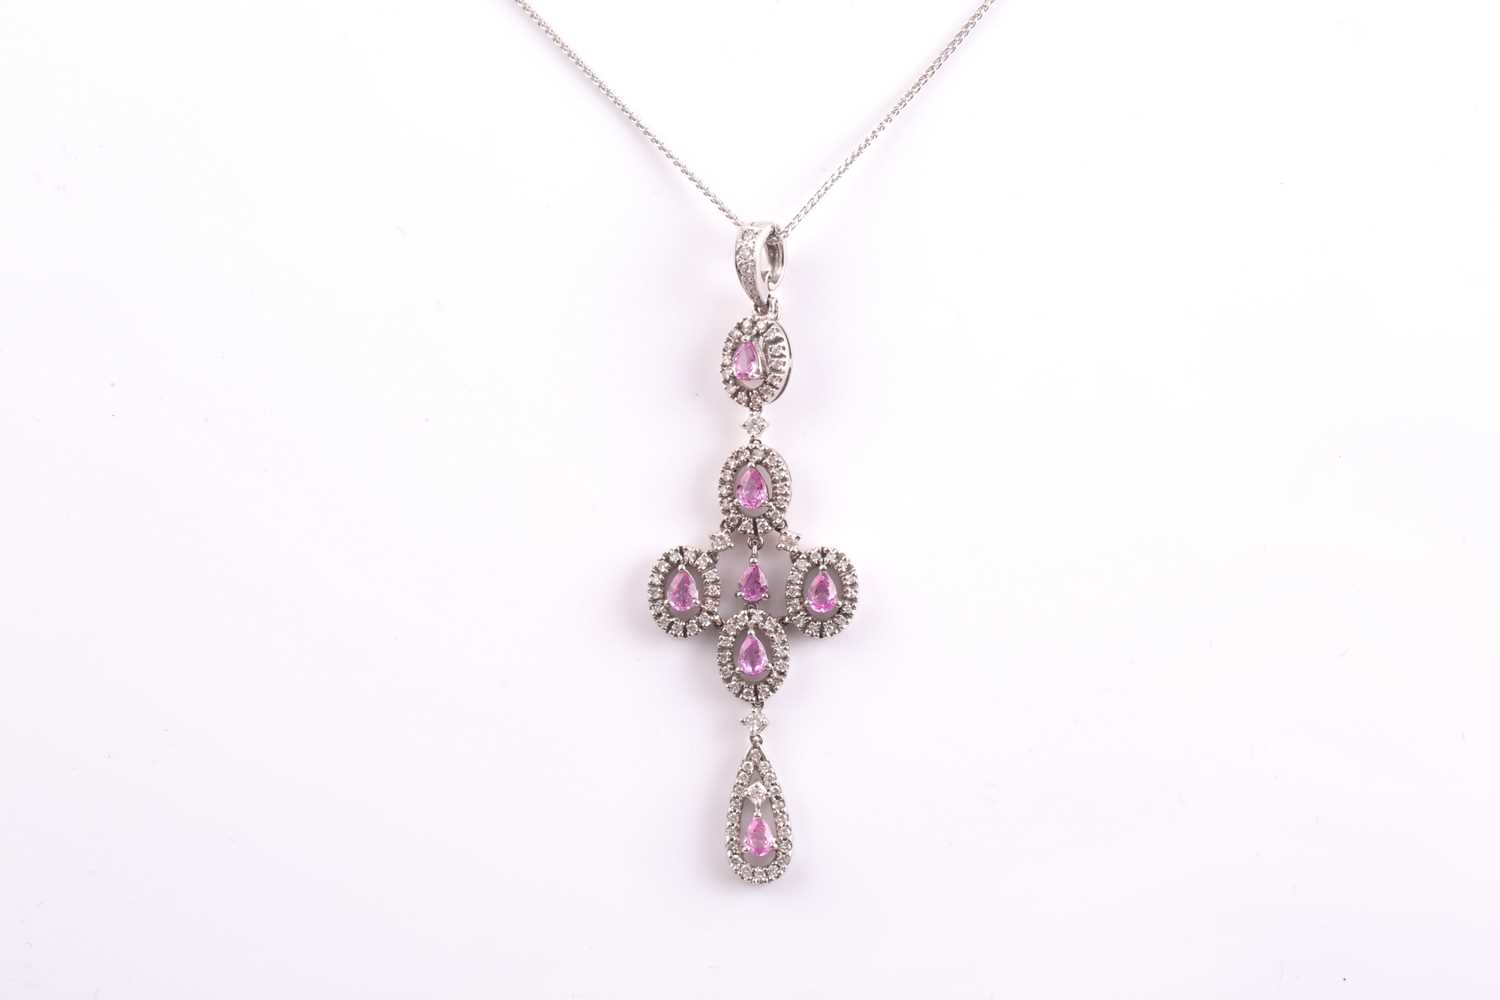 An 18ct white gold, diamond, and pink sapphire quatrefoil drop pendant necklace, the cross design - Image 3 of 4